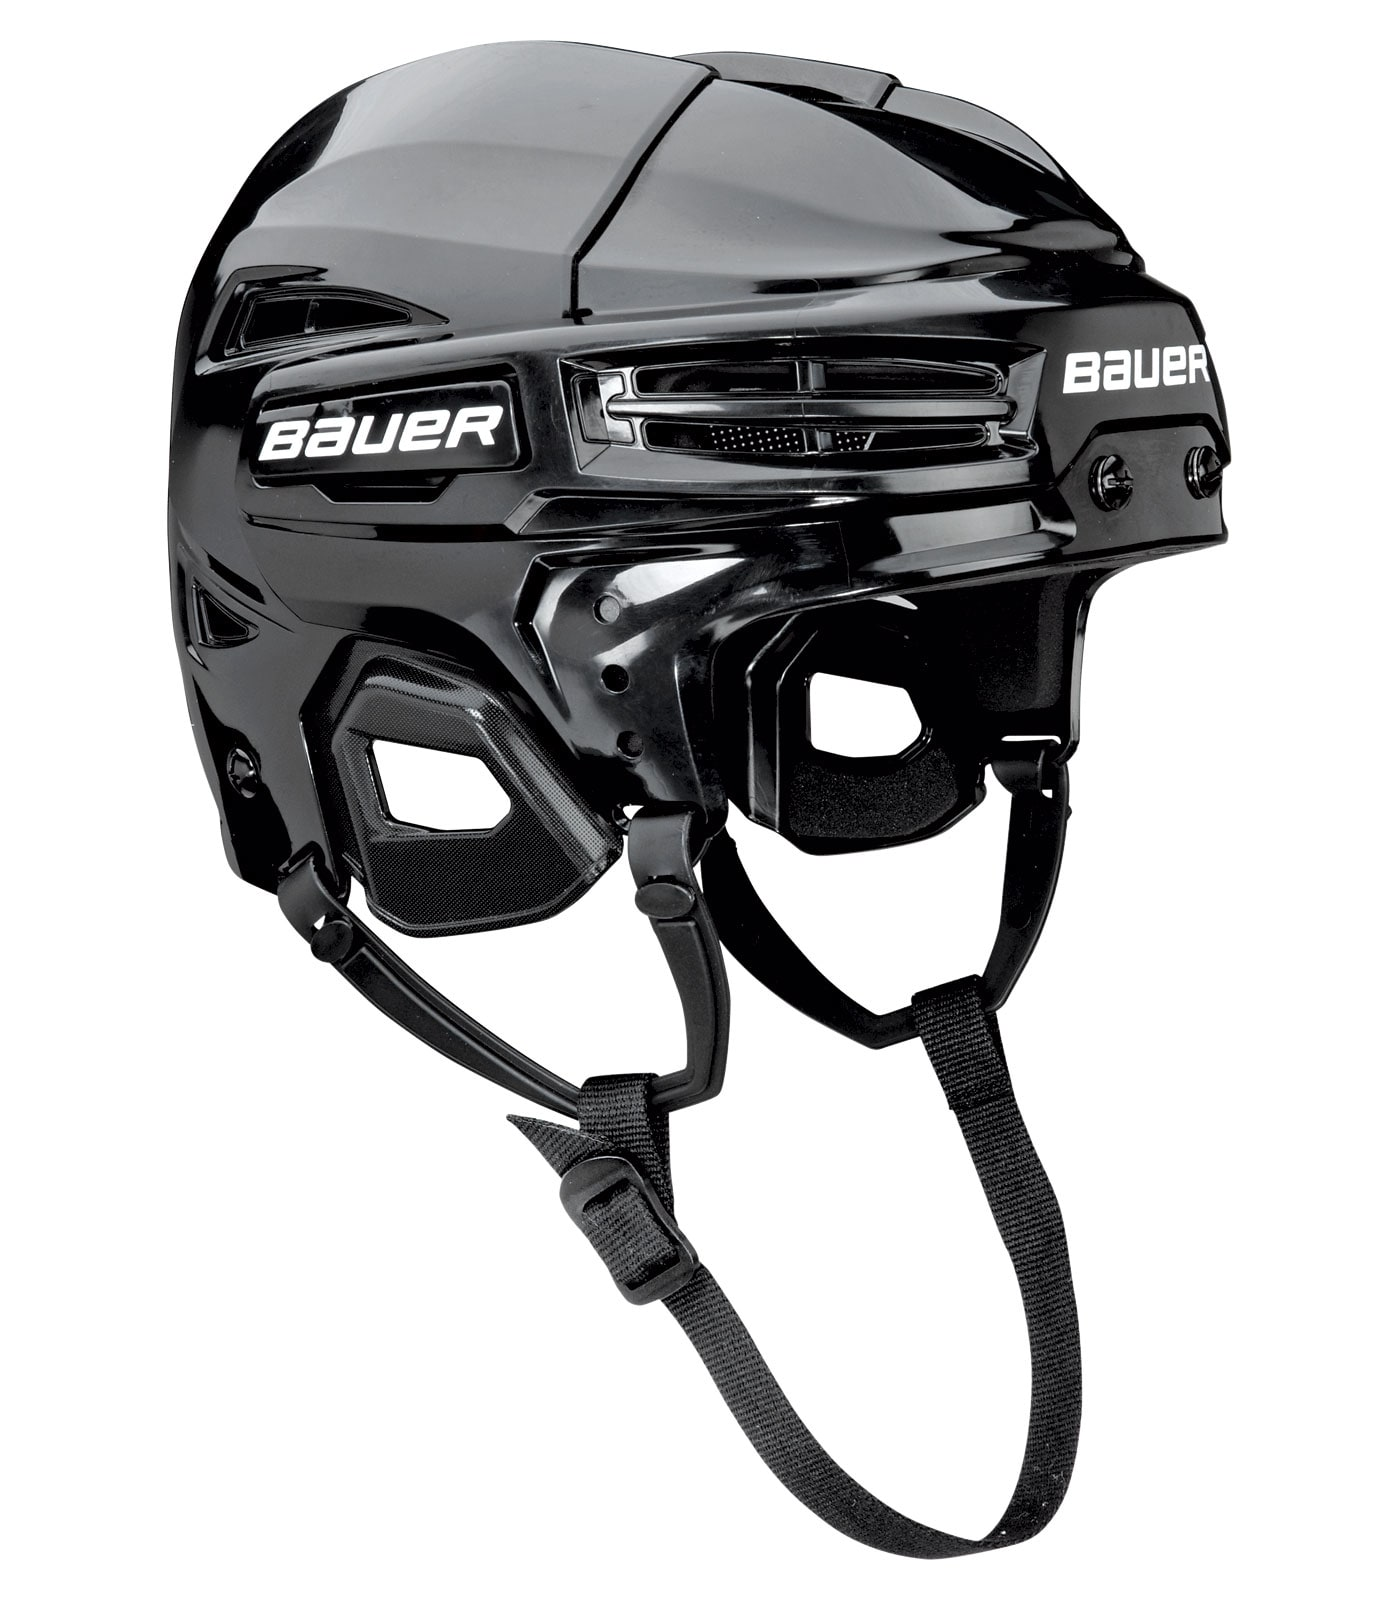 Image of Bauer IMS 5.0 Helmet - Black